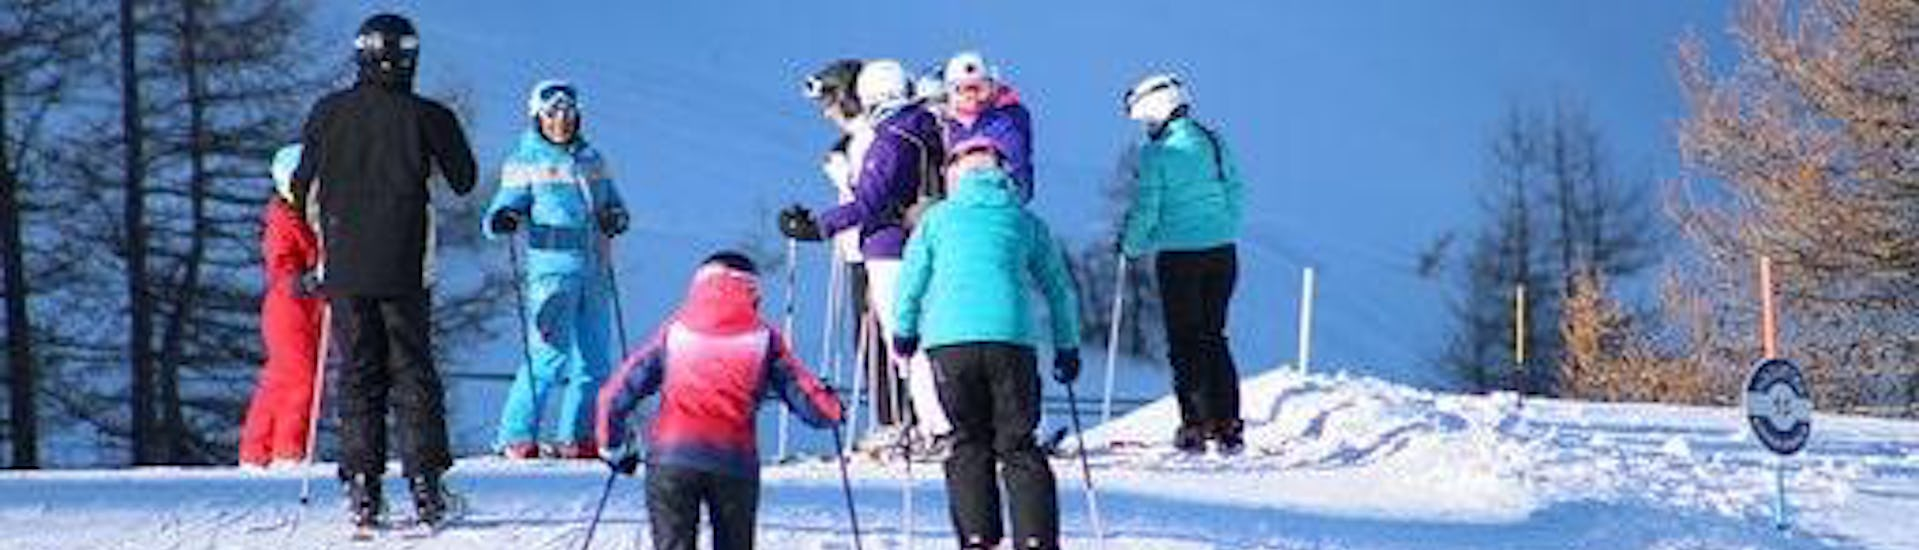 Ski Lessons for Adults - Without Experience